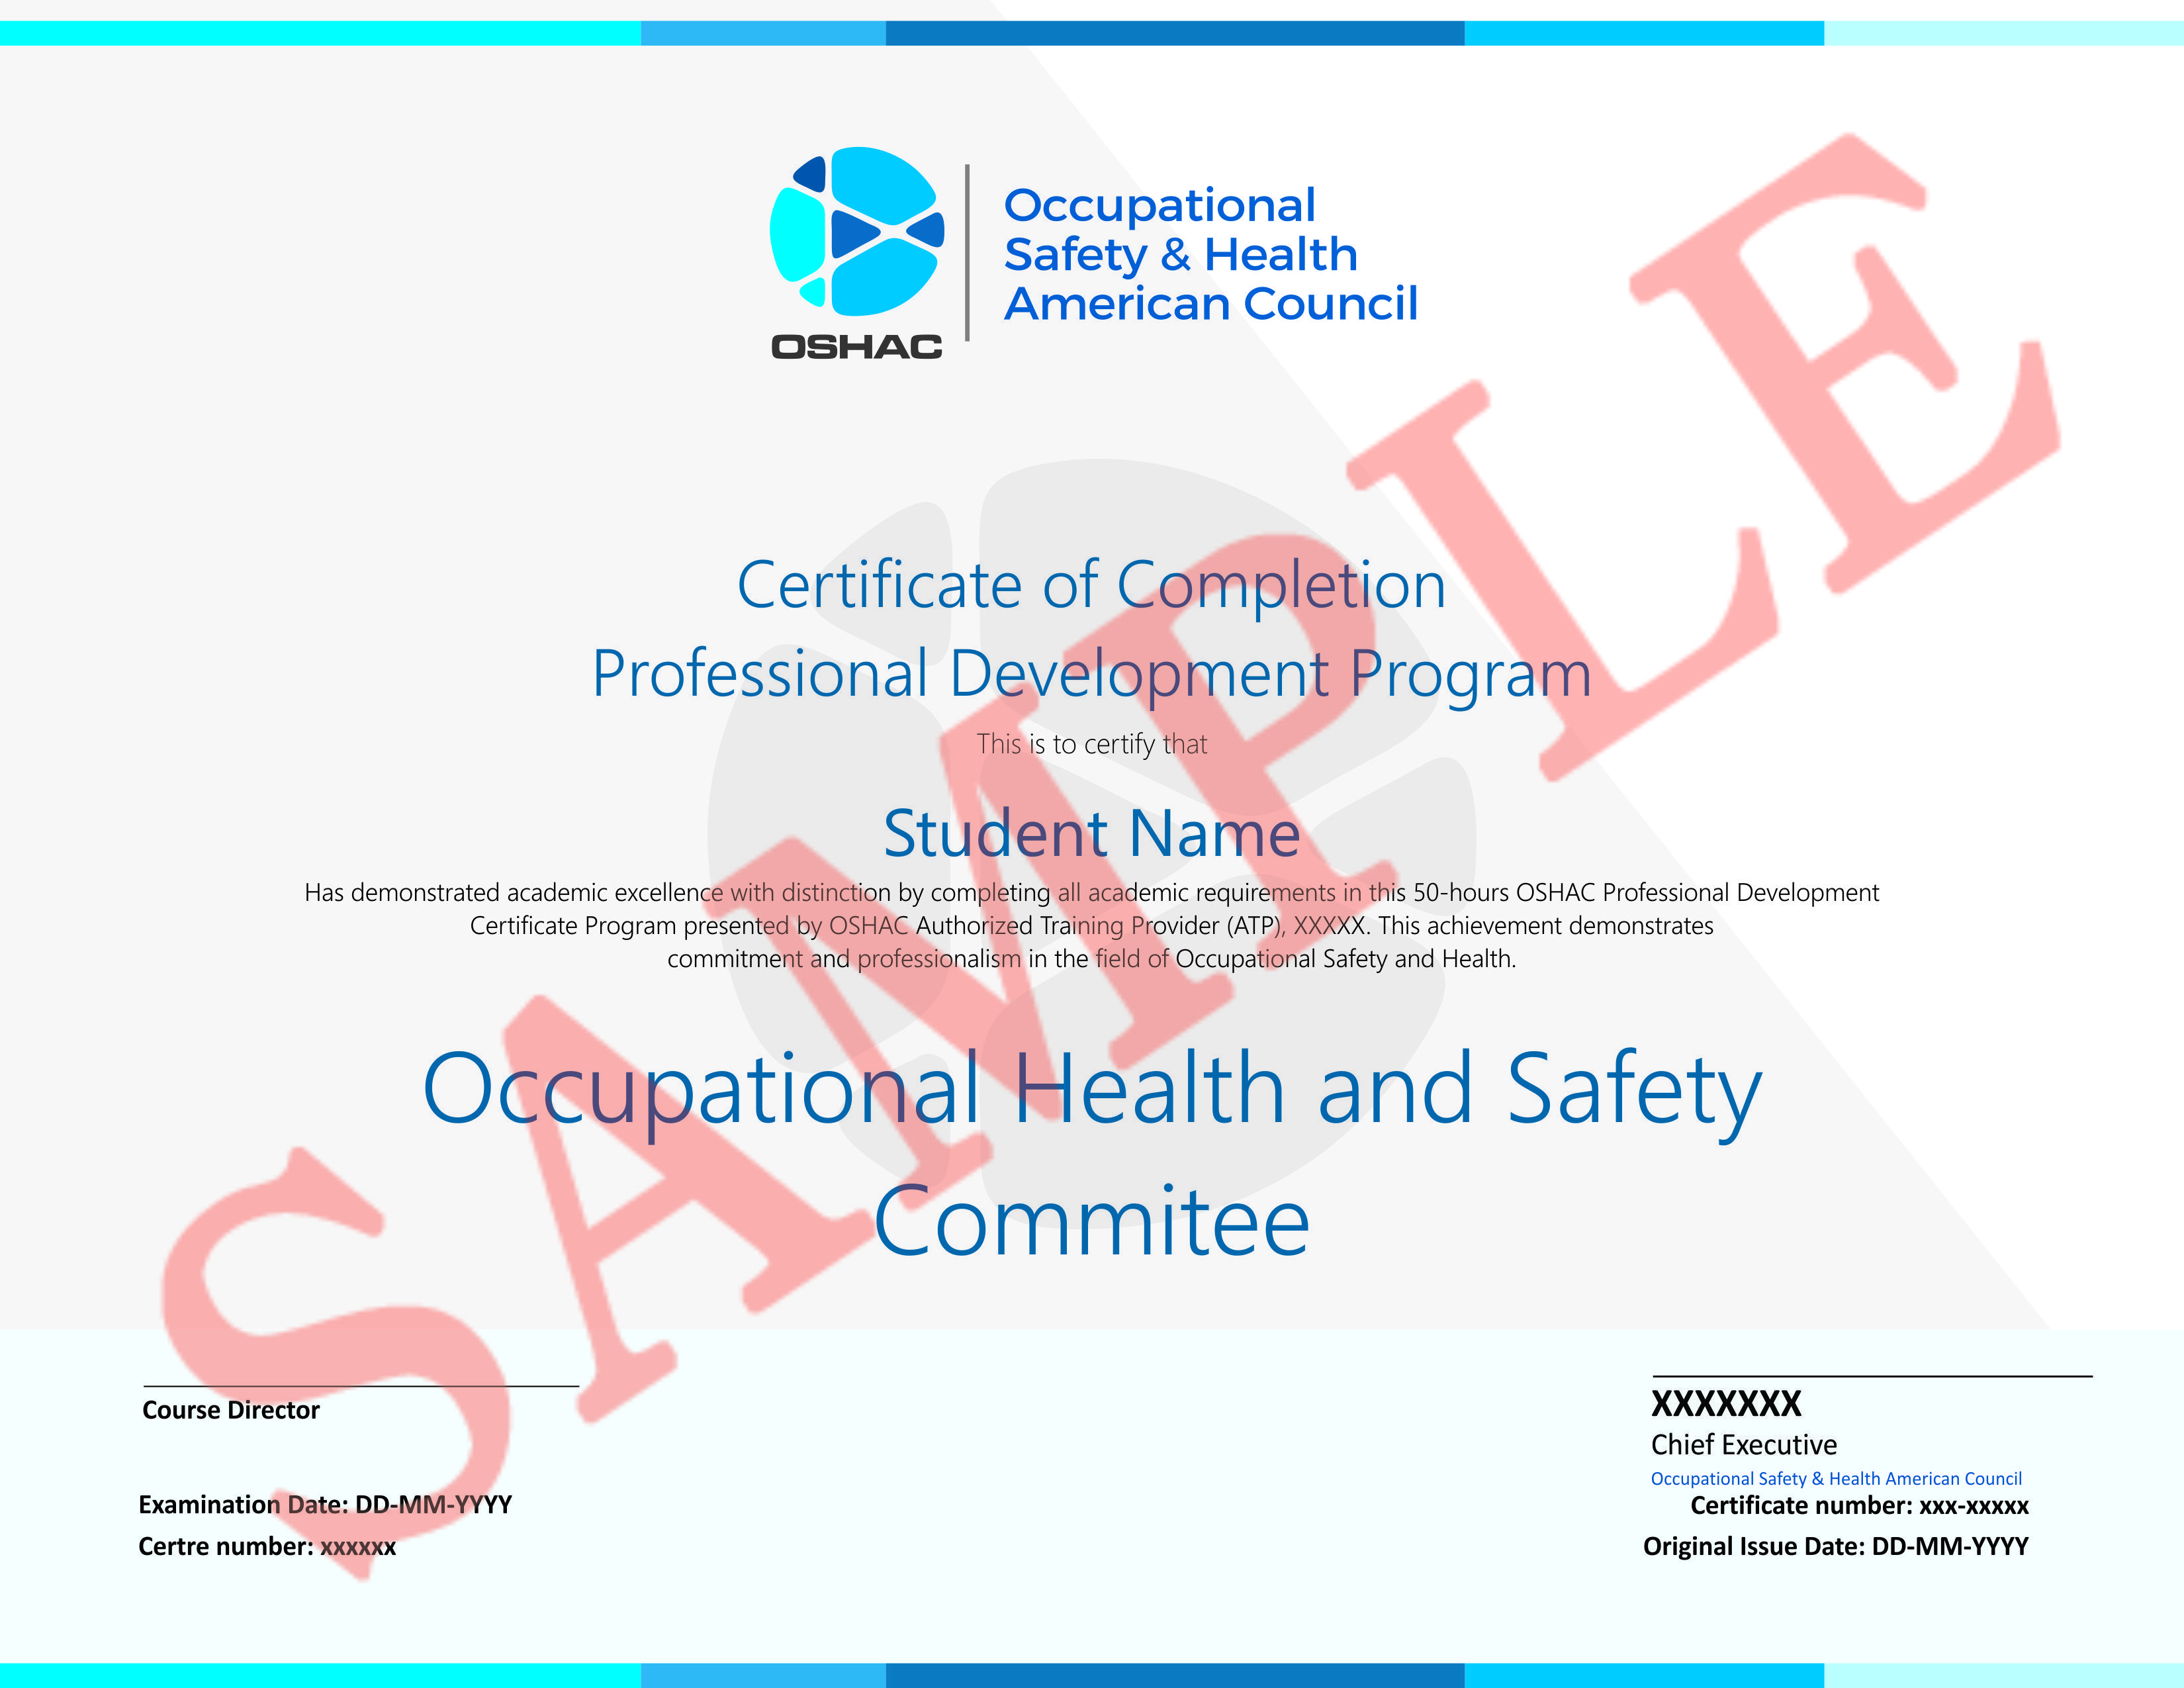 Many states require fully trained safety committee/team